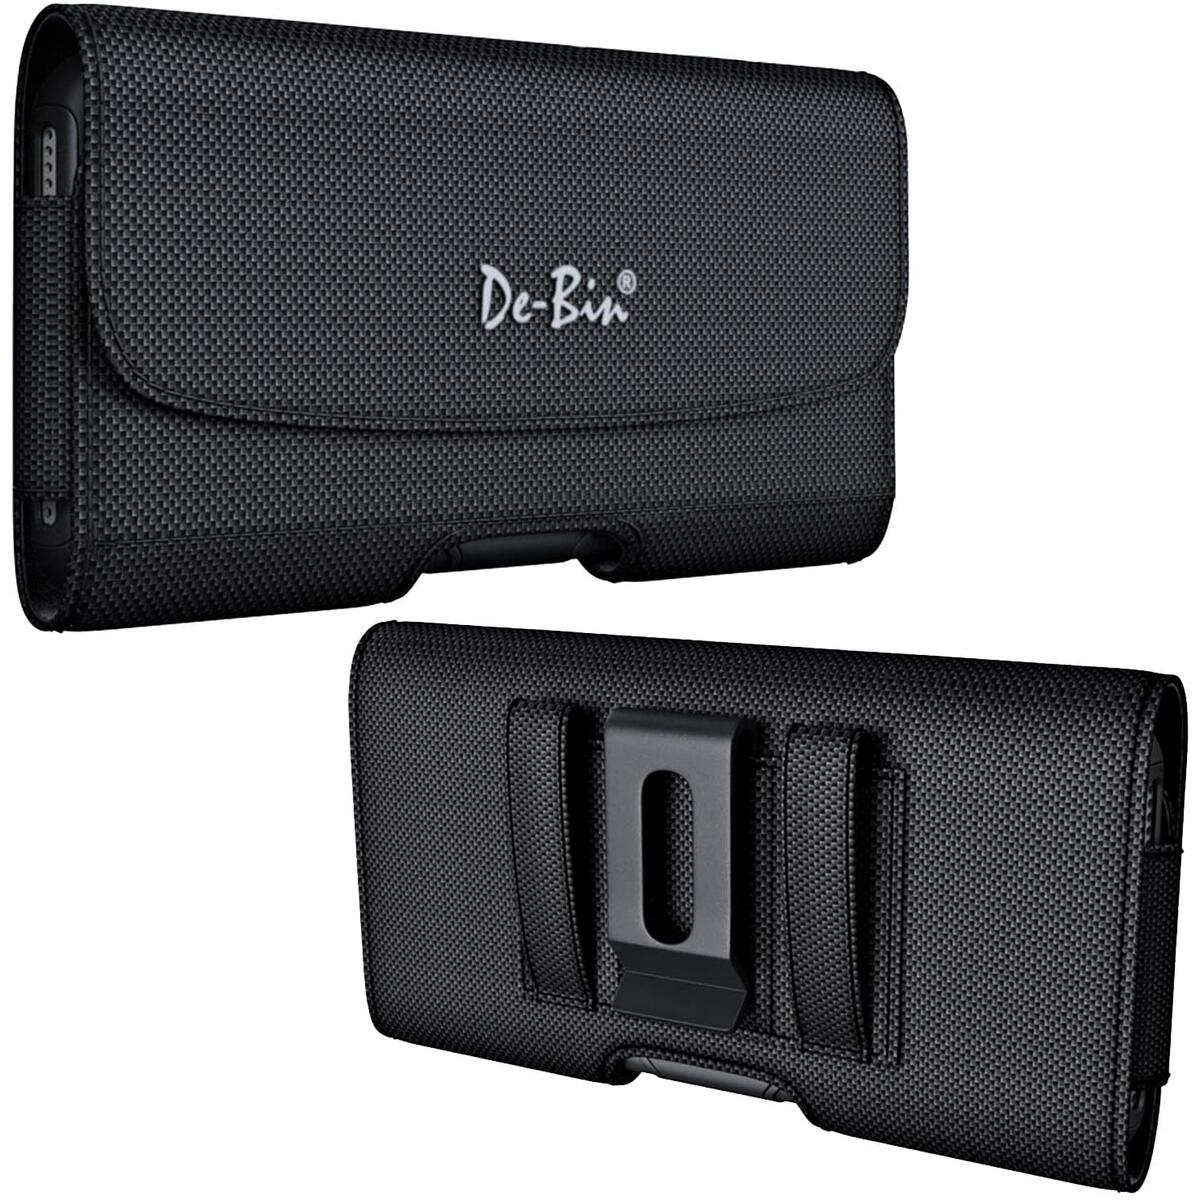 De-Bin Cell Phone Holster Designed for iPhone 12 Pro / 12/ XR Belt Case- Premium Belt Holder Pouch with Belt Clip Belt Loops Cover Built-in Card Slot Fits Phone with Case on- Black